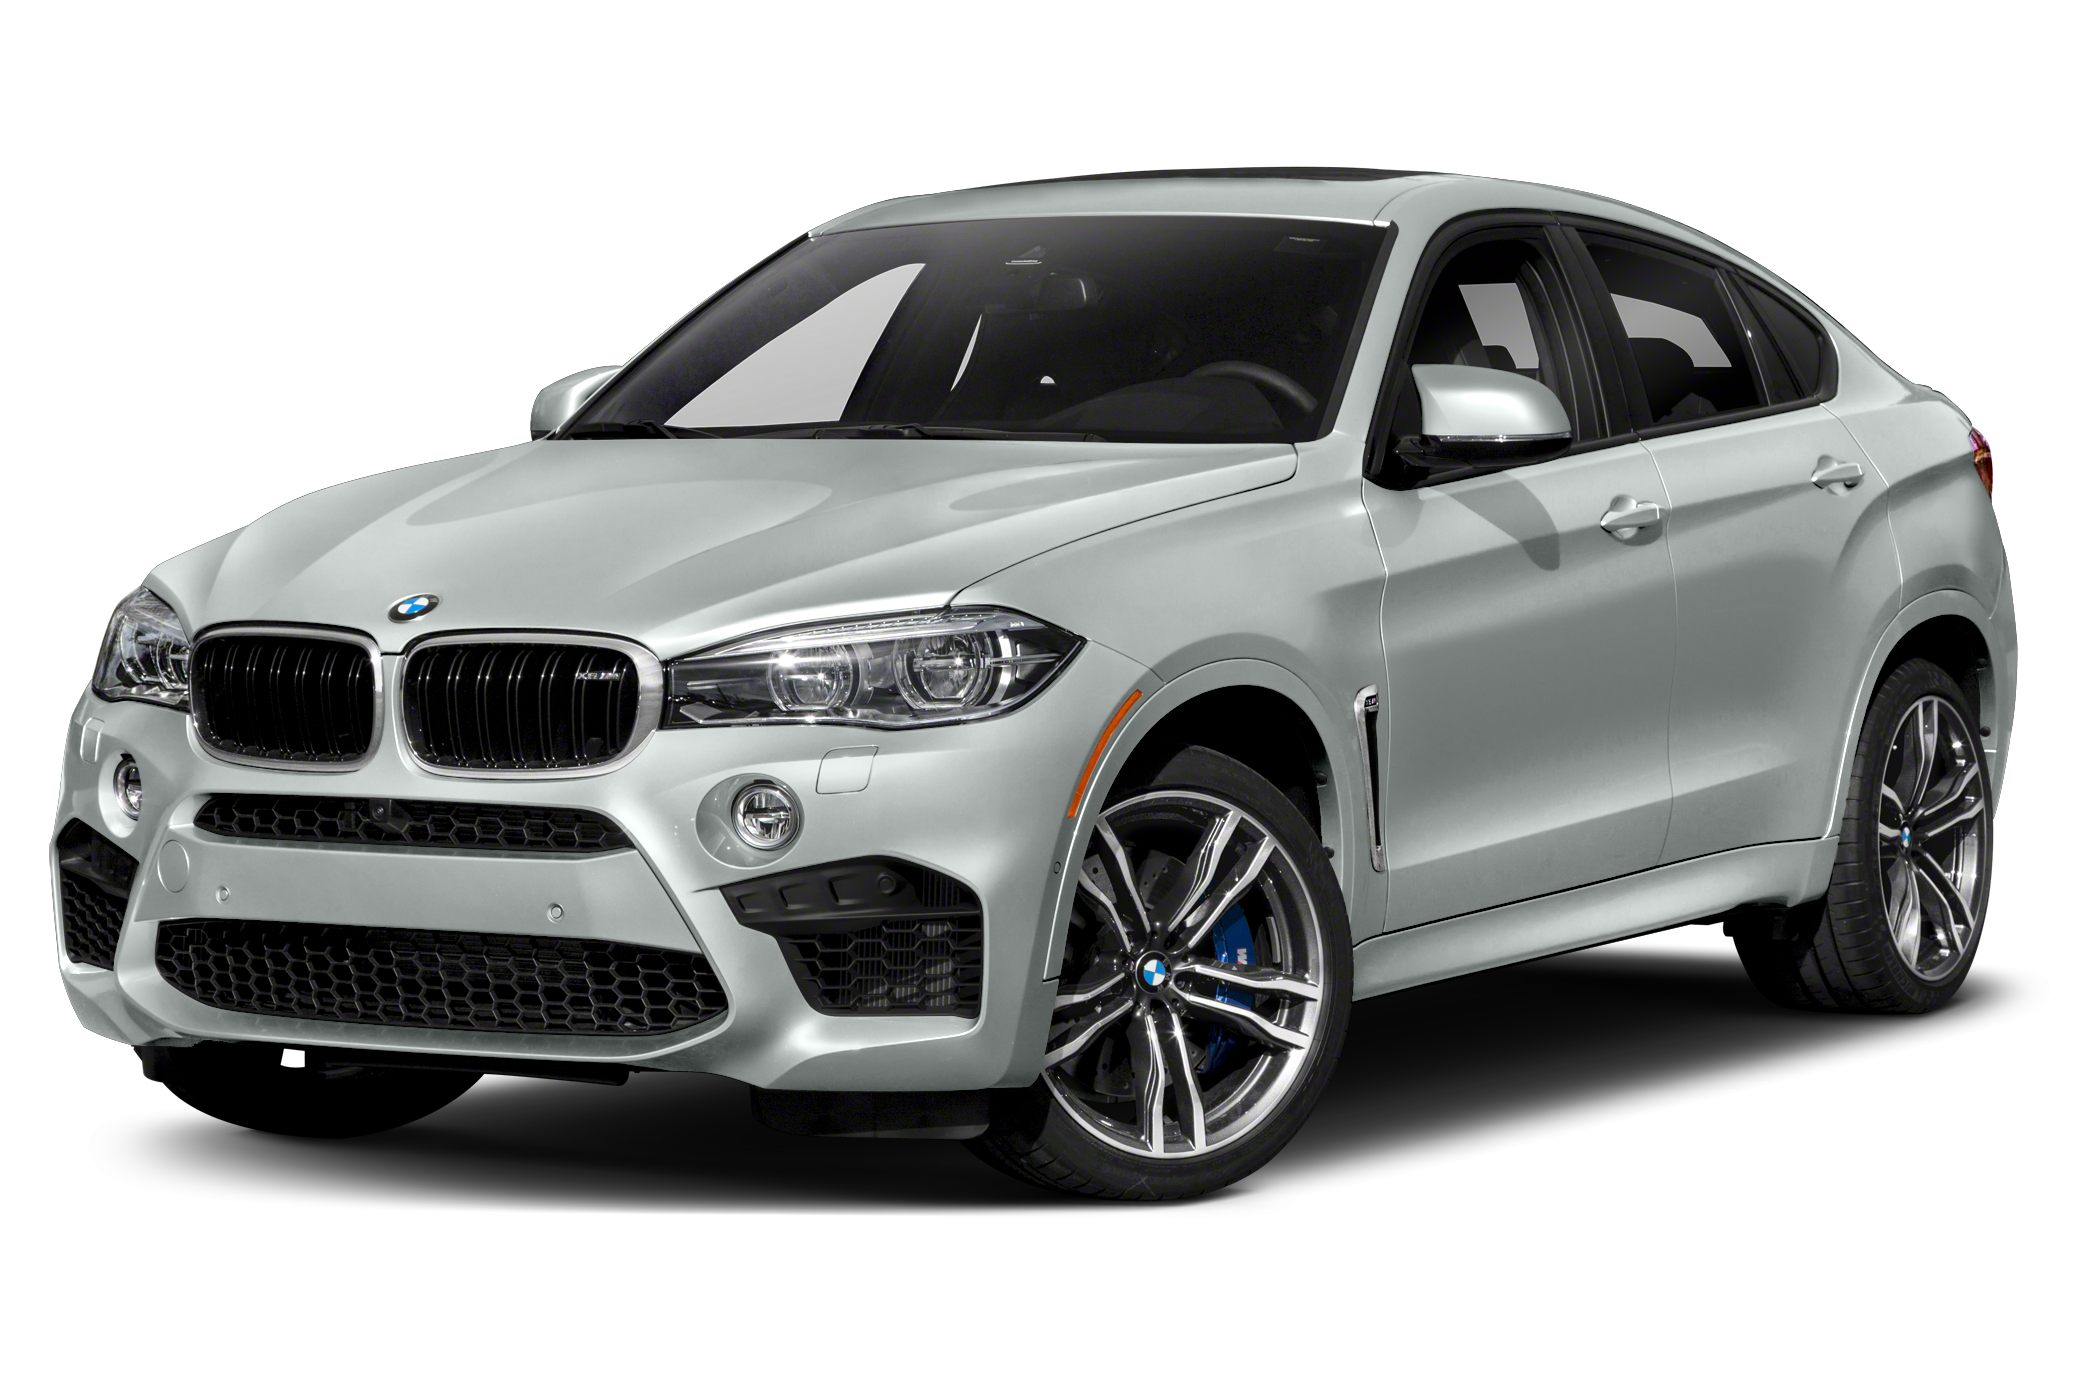 2019 Bmw X6 M Base 4dr All Wheel Drive Sports Activity Coupe Pictures